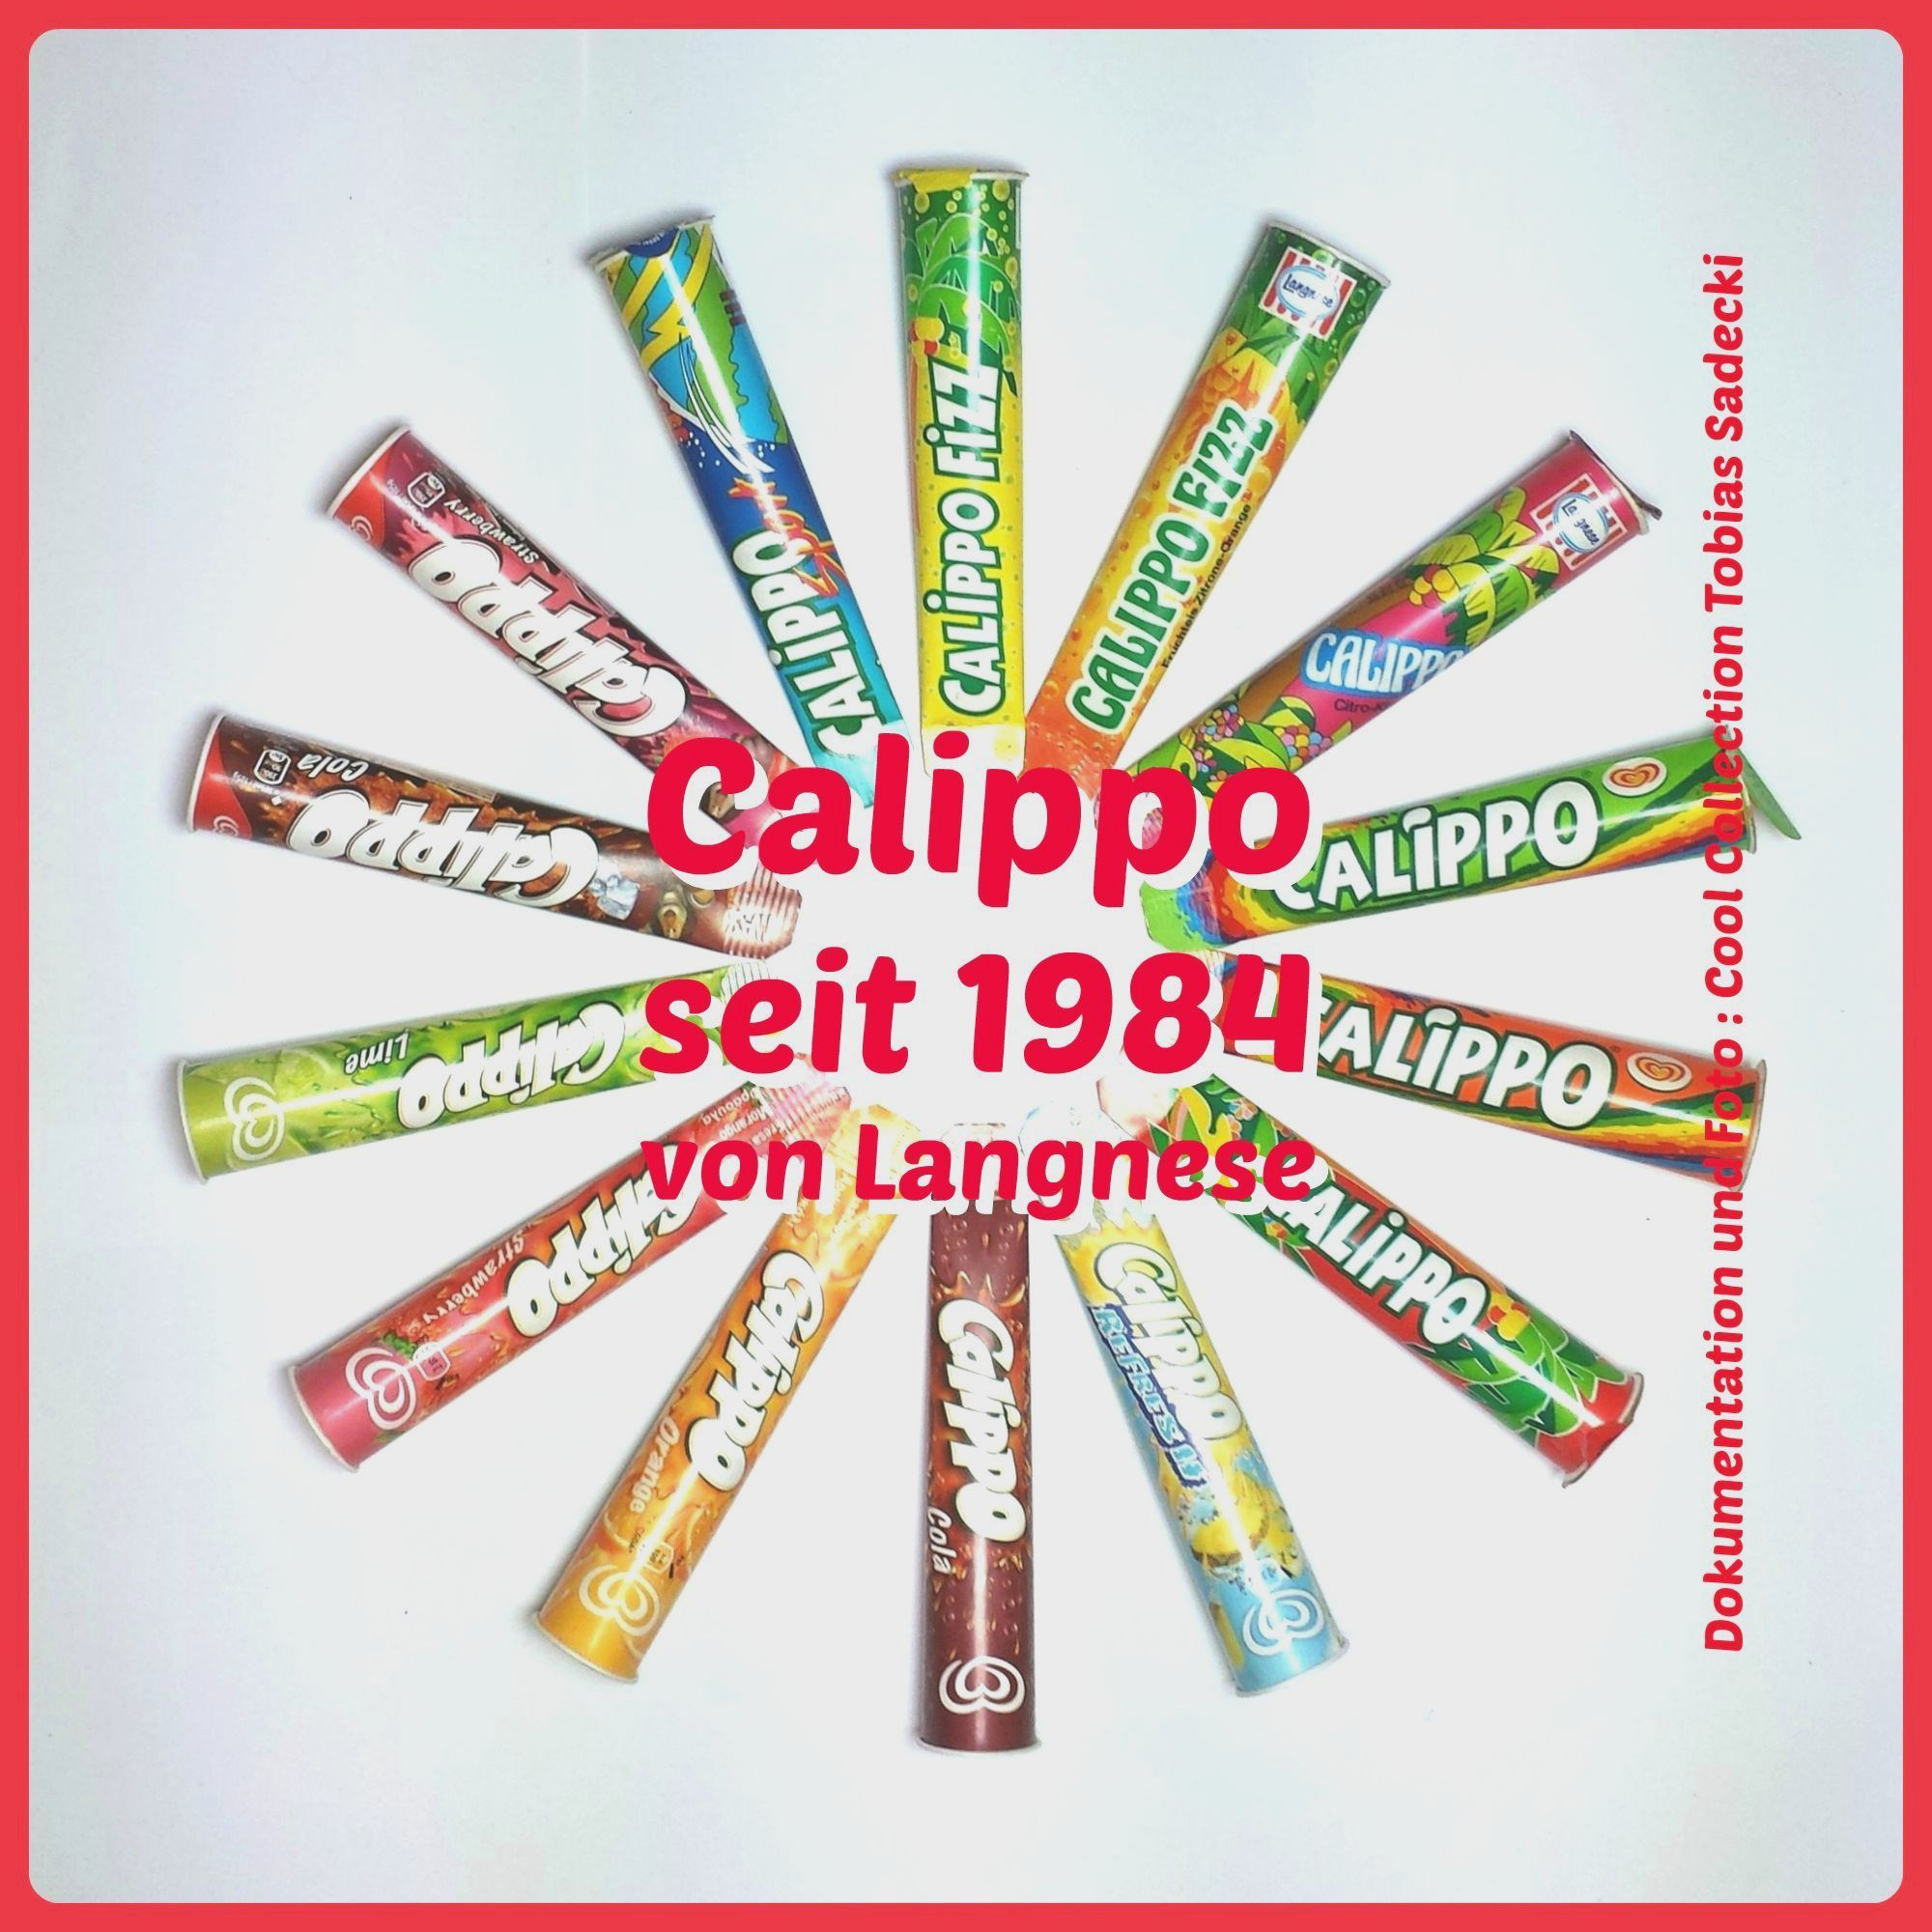 Calippo Eis Calippo Cool Collection Langnese Heartbrand Verpackungen